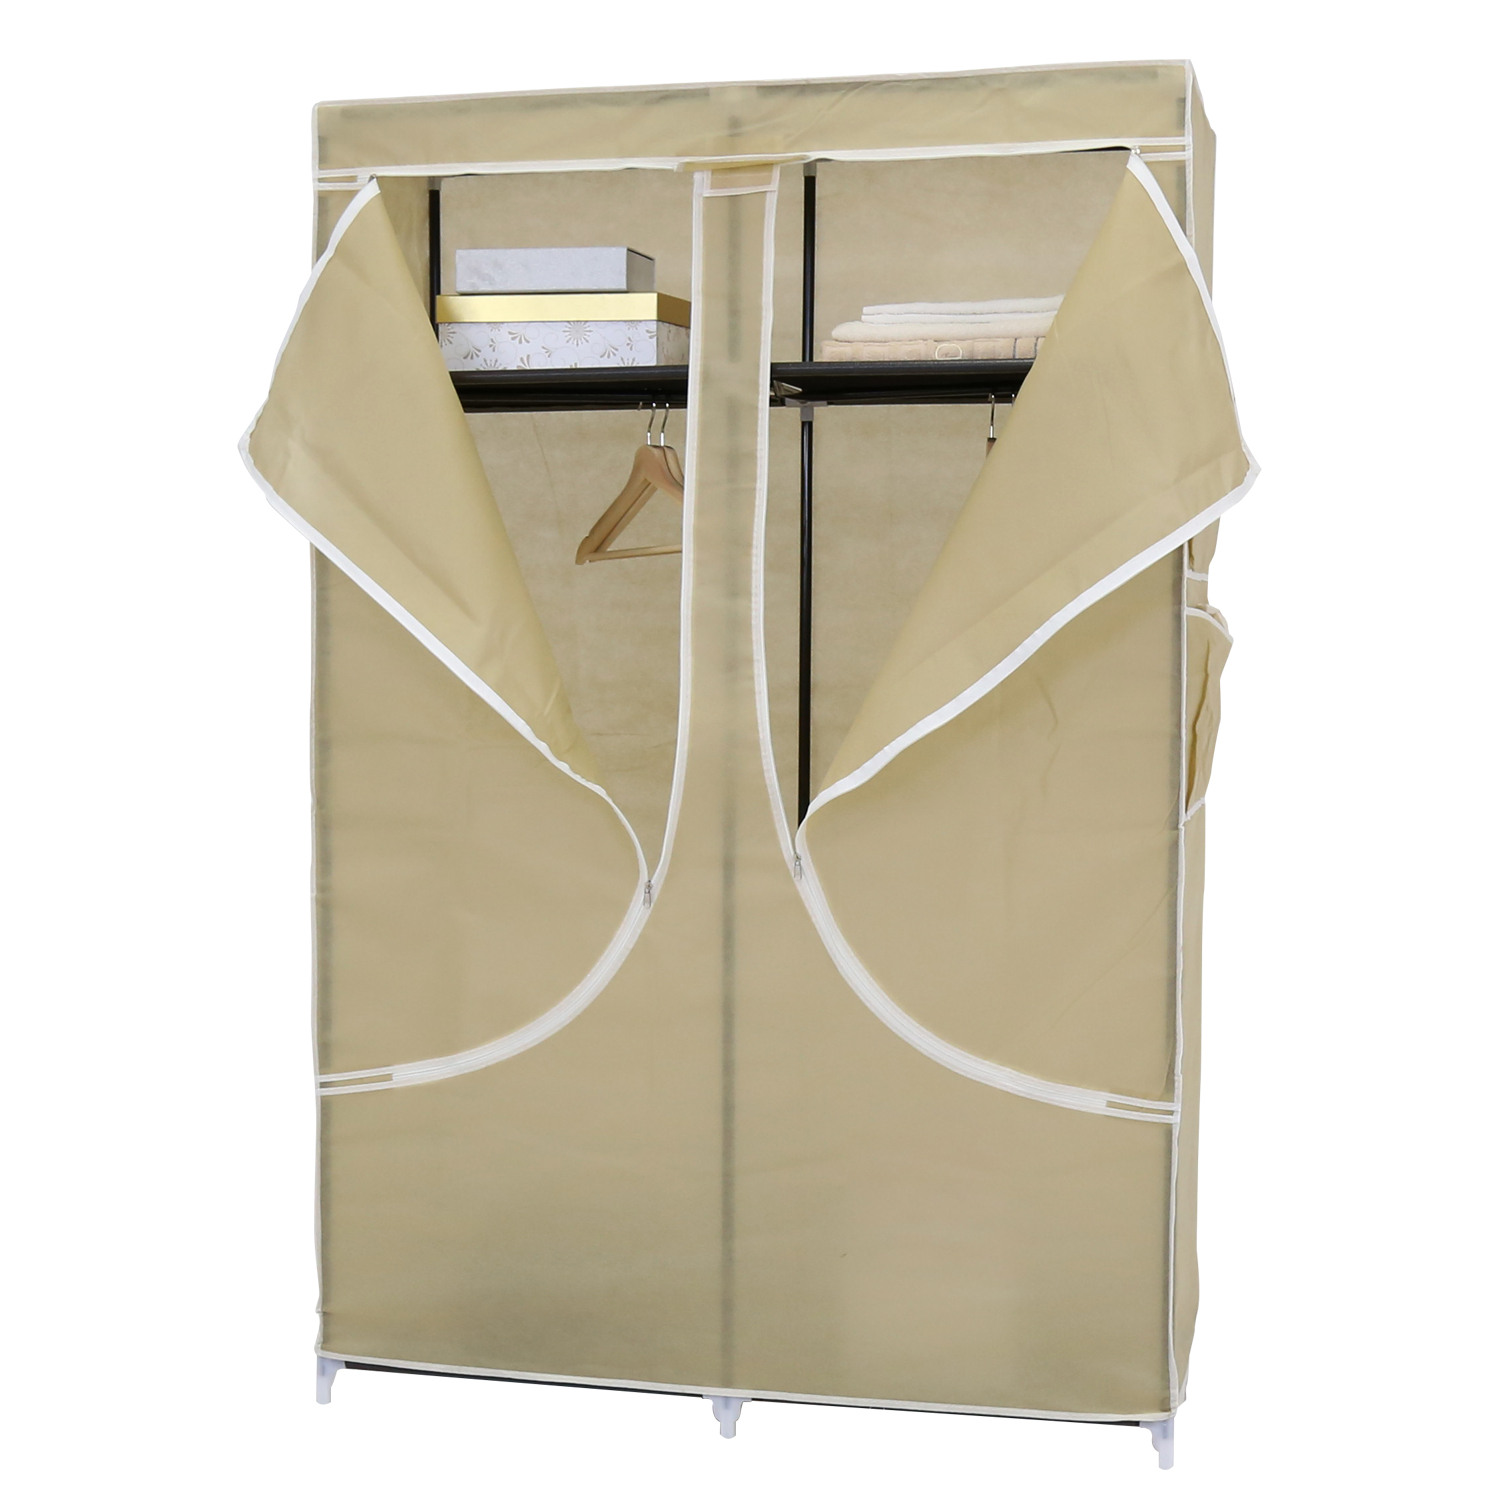 43'' Portable Closet Storage Organizer Wardrobe Clothes Rack with Shelves Beige